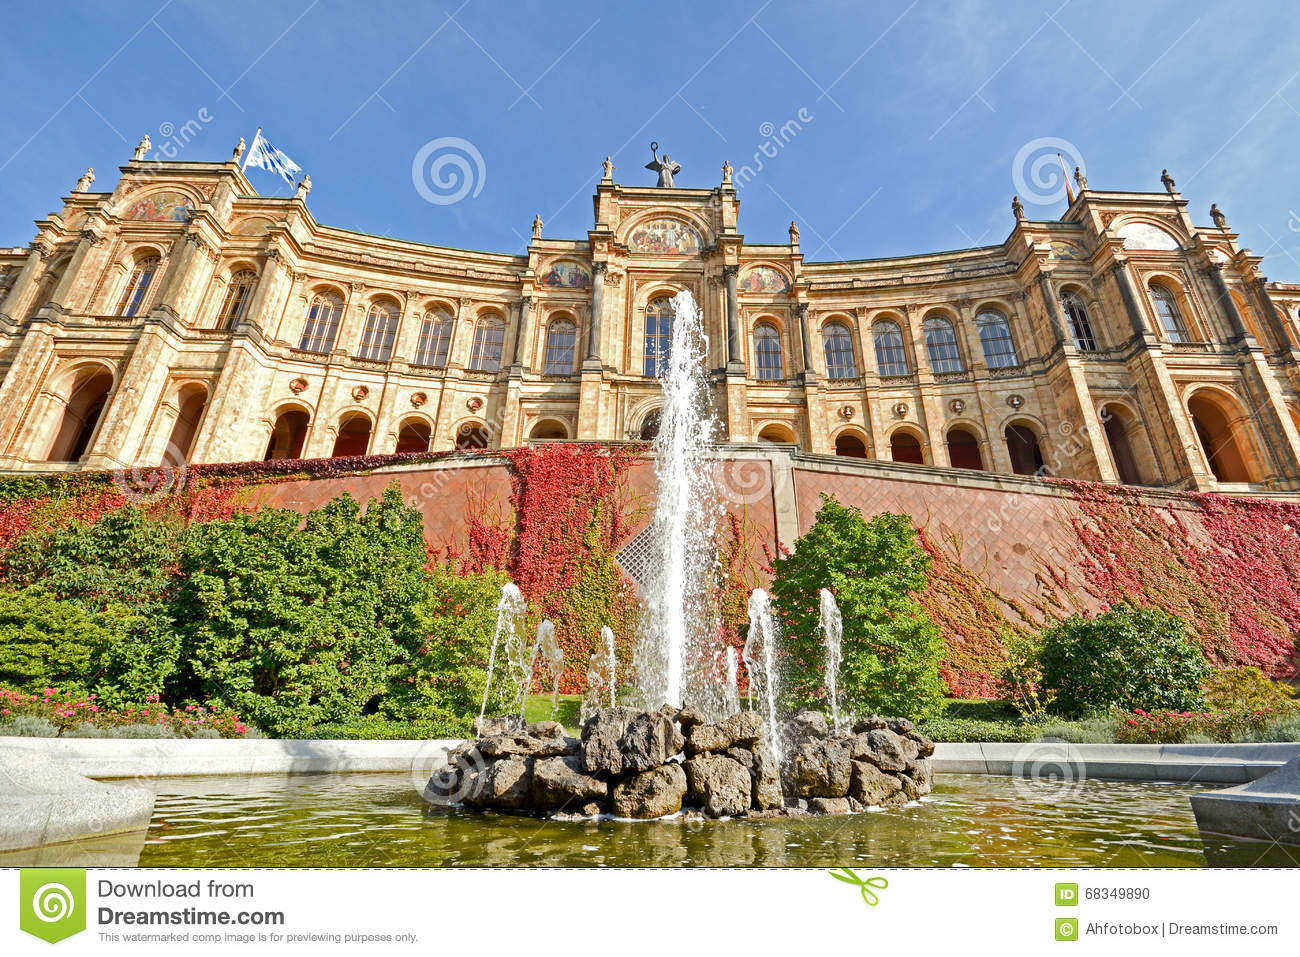 maximilianeum bayerischer landtag mit brunnen in m nchen bayern deutschland stockfoto bild. Black Bedroom Furniture Sets. Home Design Ideas